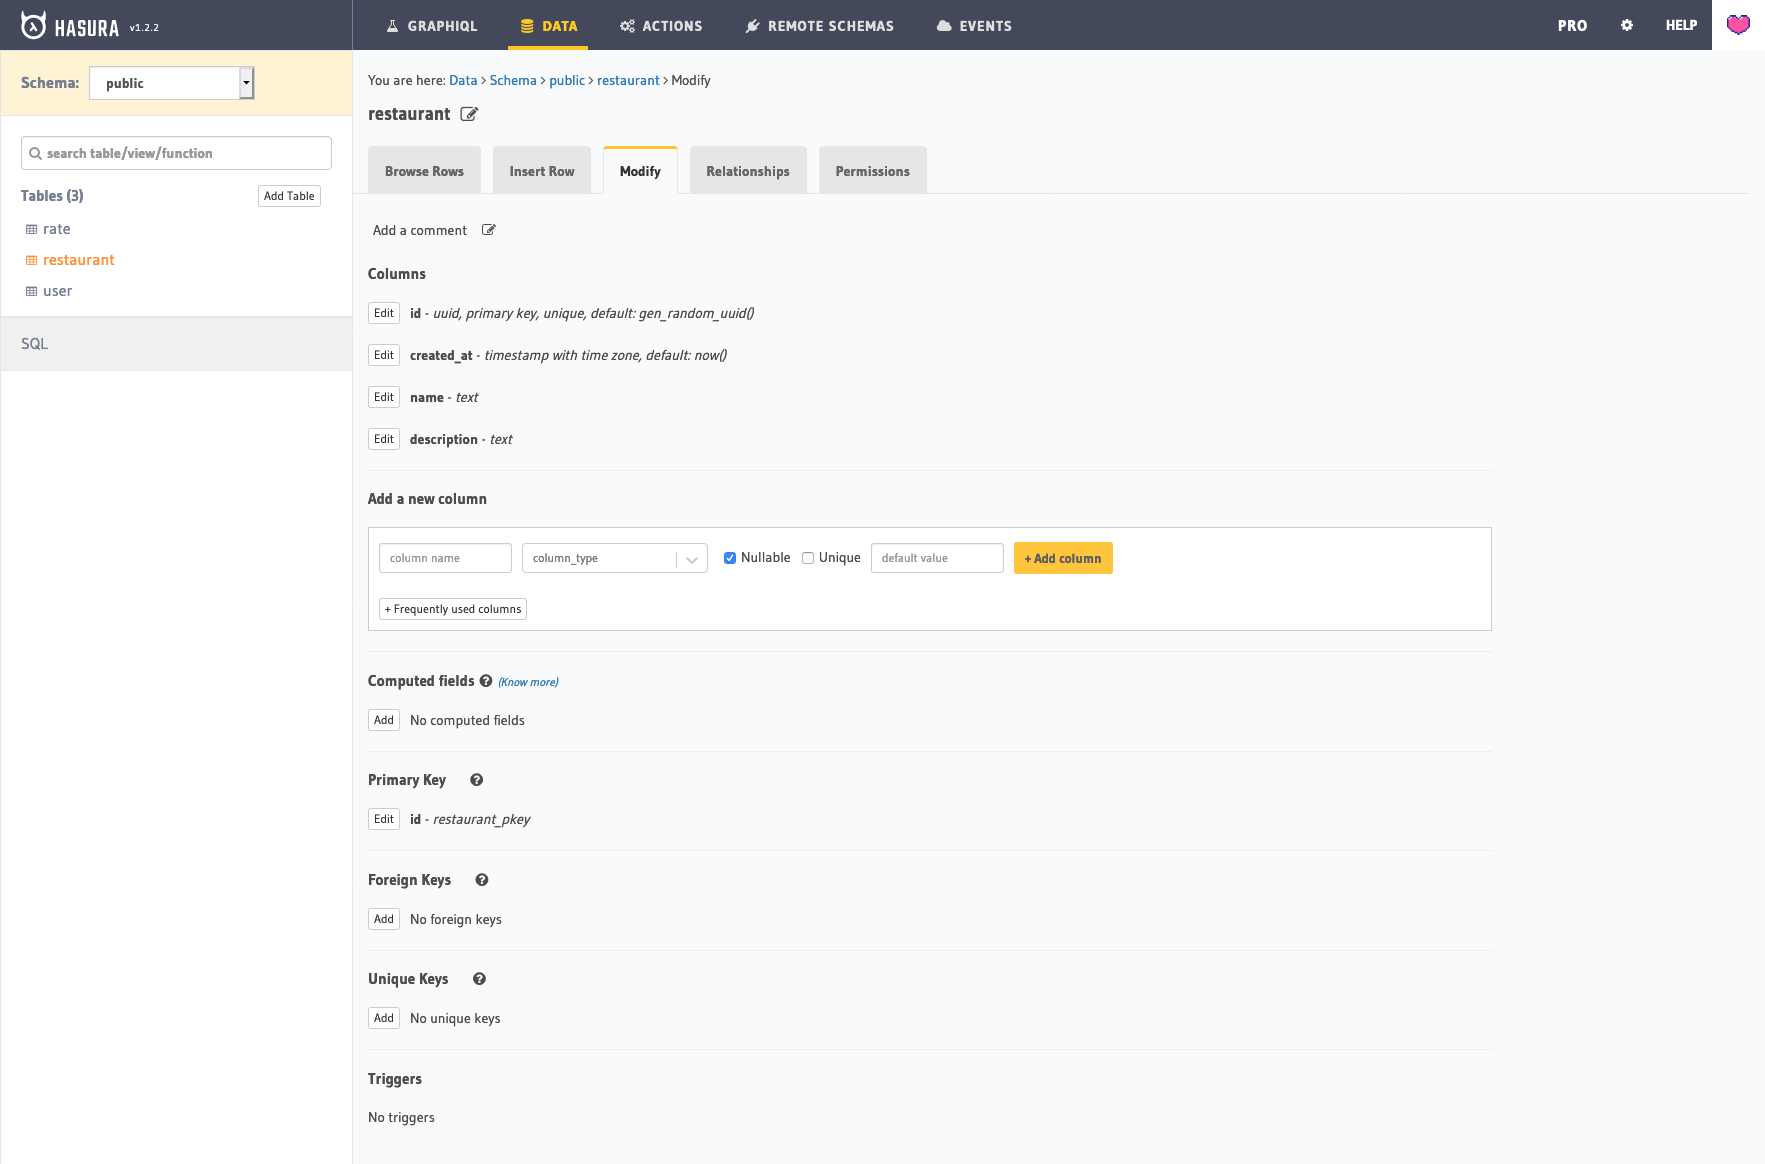 Hasura web interface to configure the data model